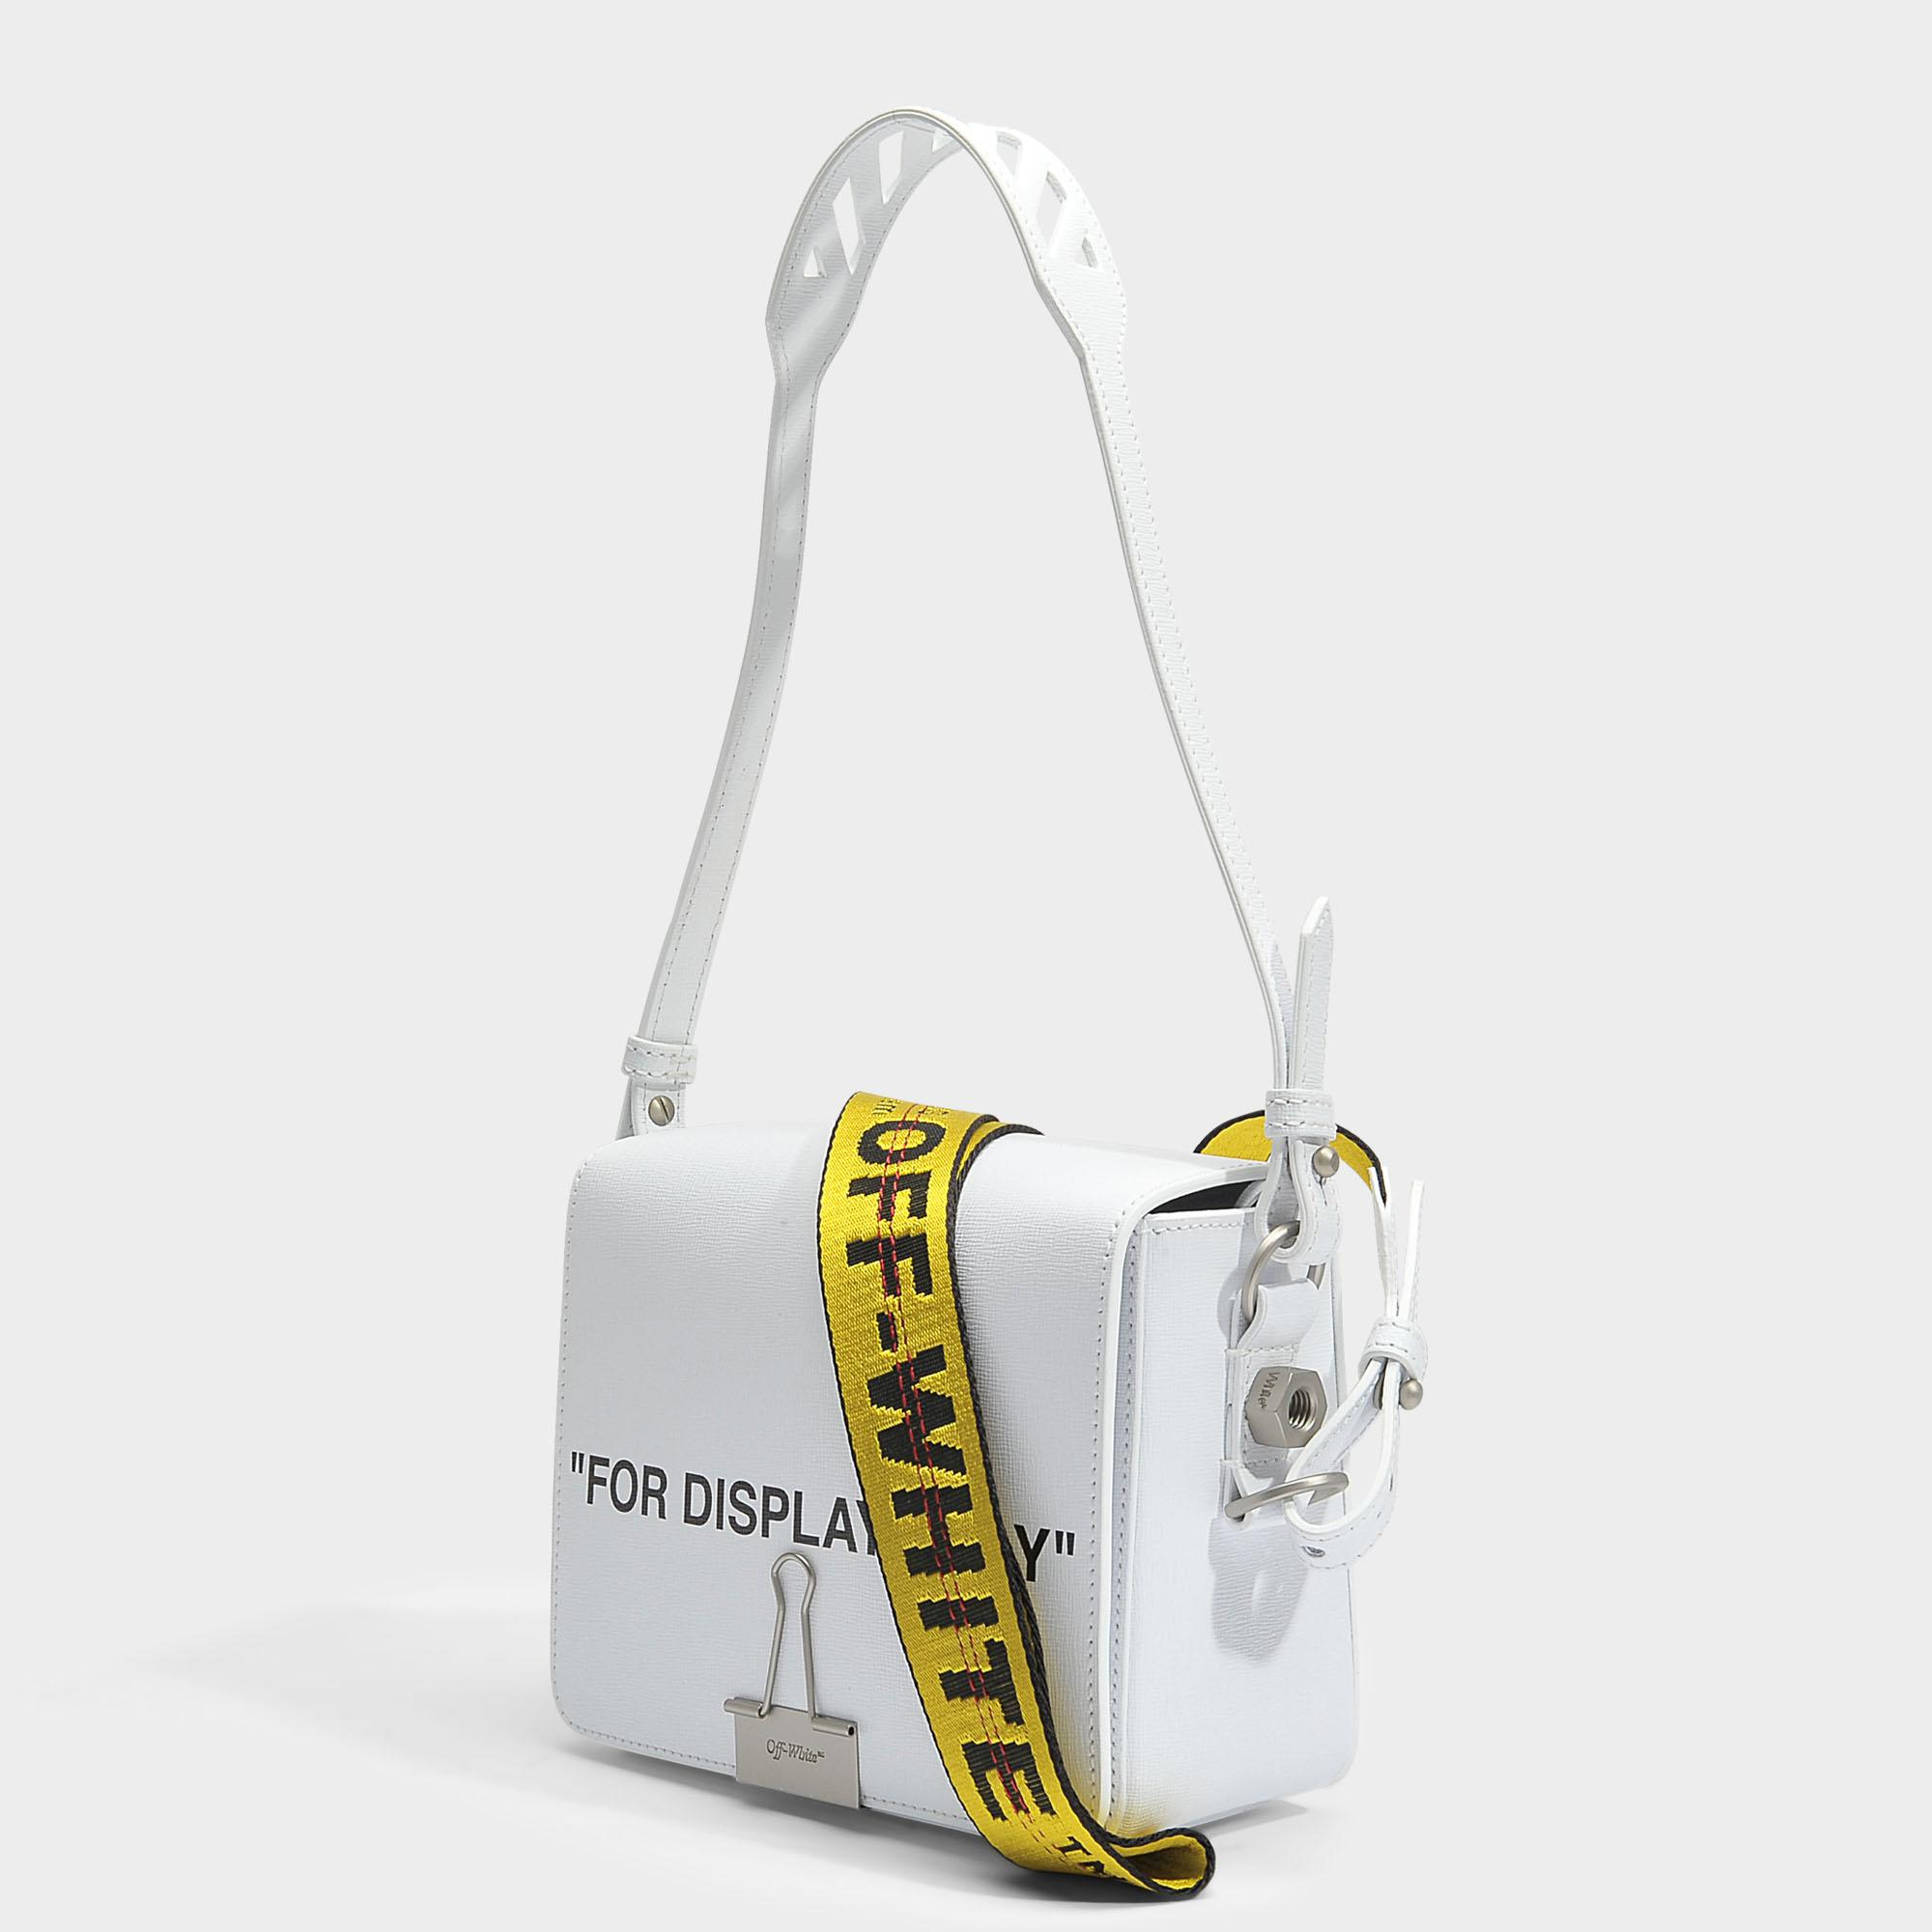 OFF WHITE Sac à rabat 'For Display Only' xPXlzvp9An